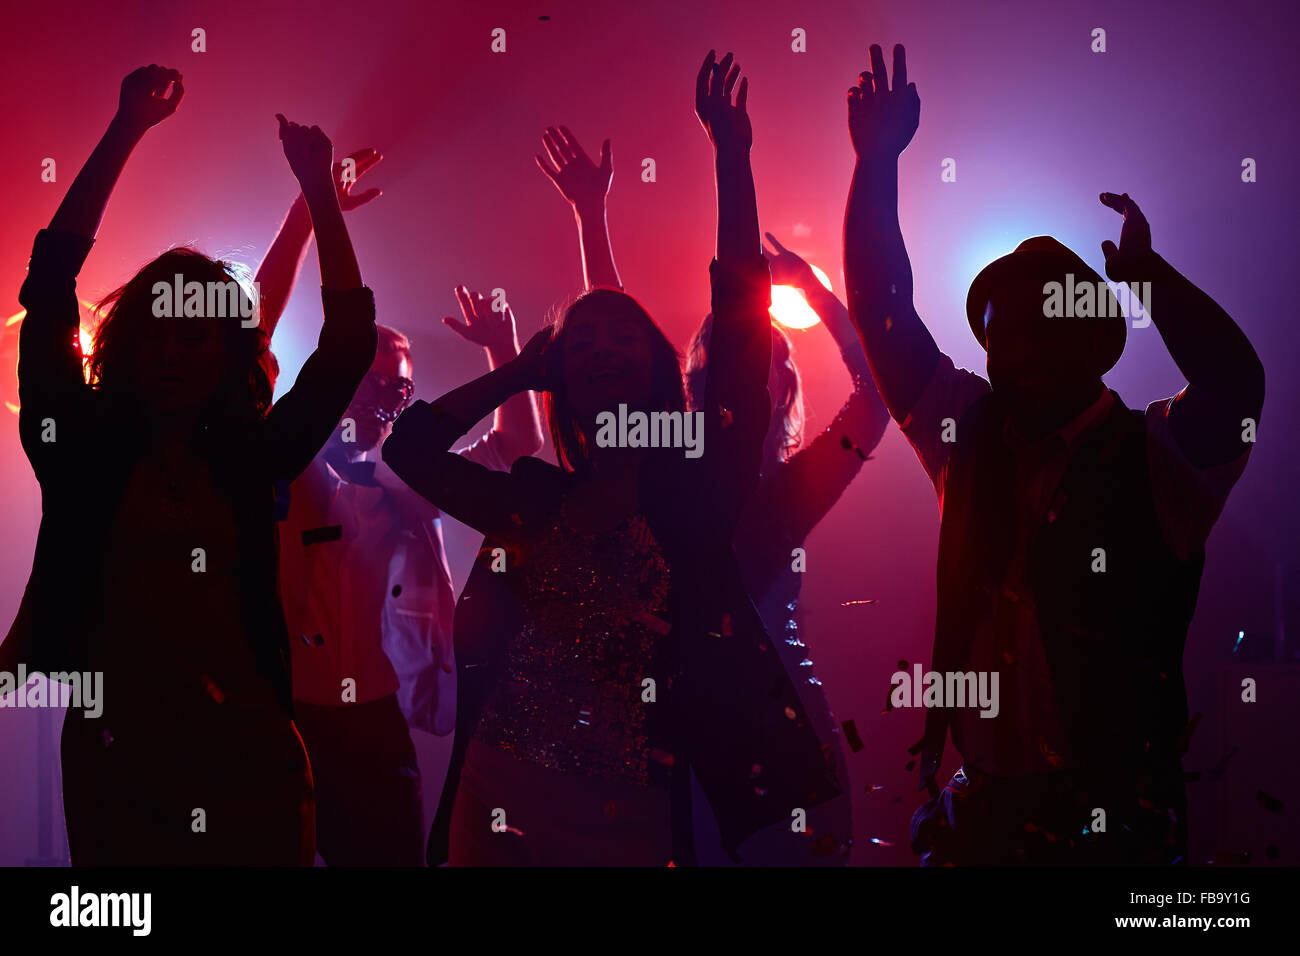 Young people raising their arms in dance - Stock Image